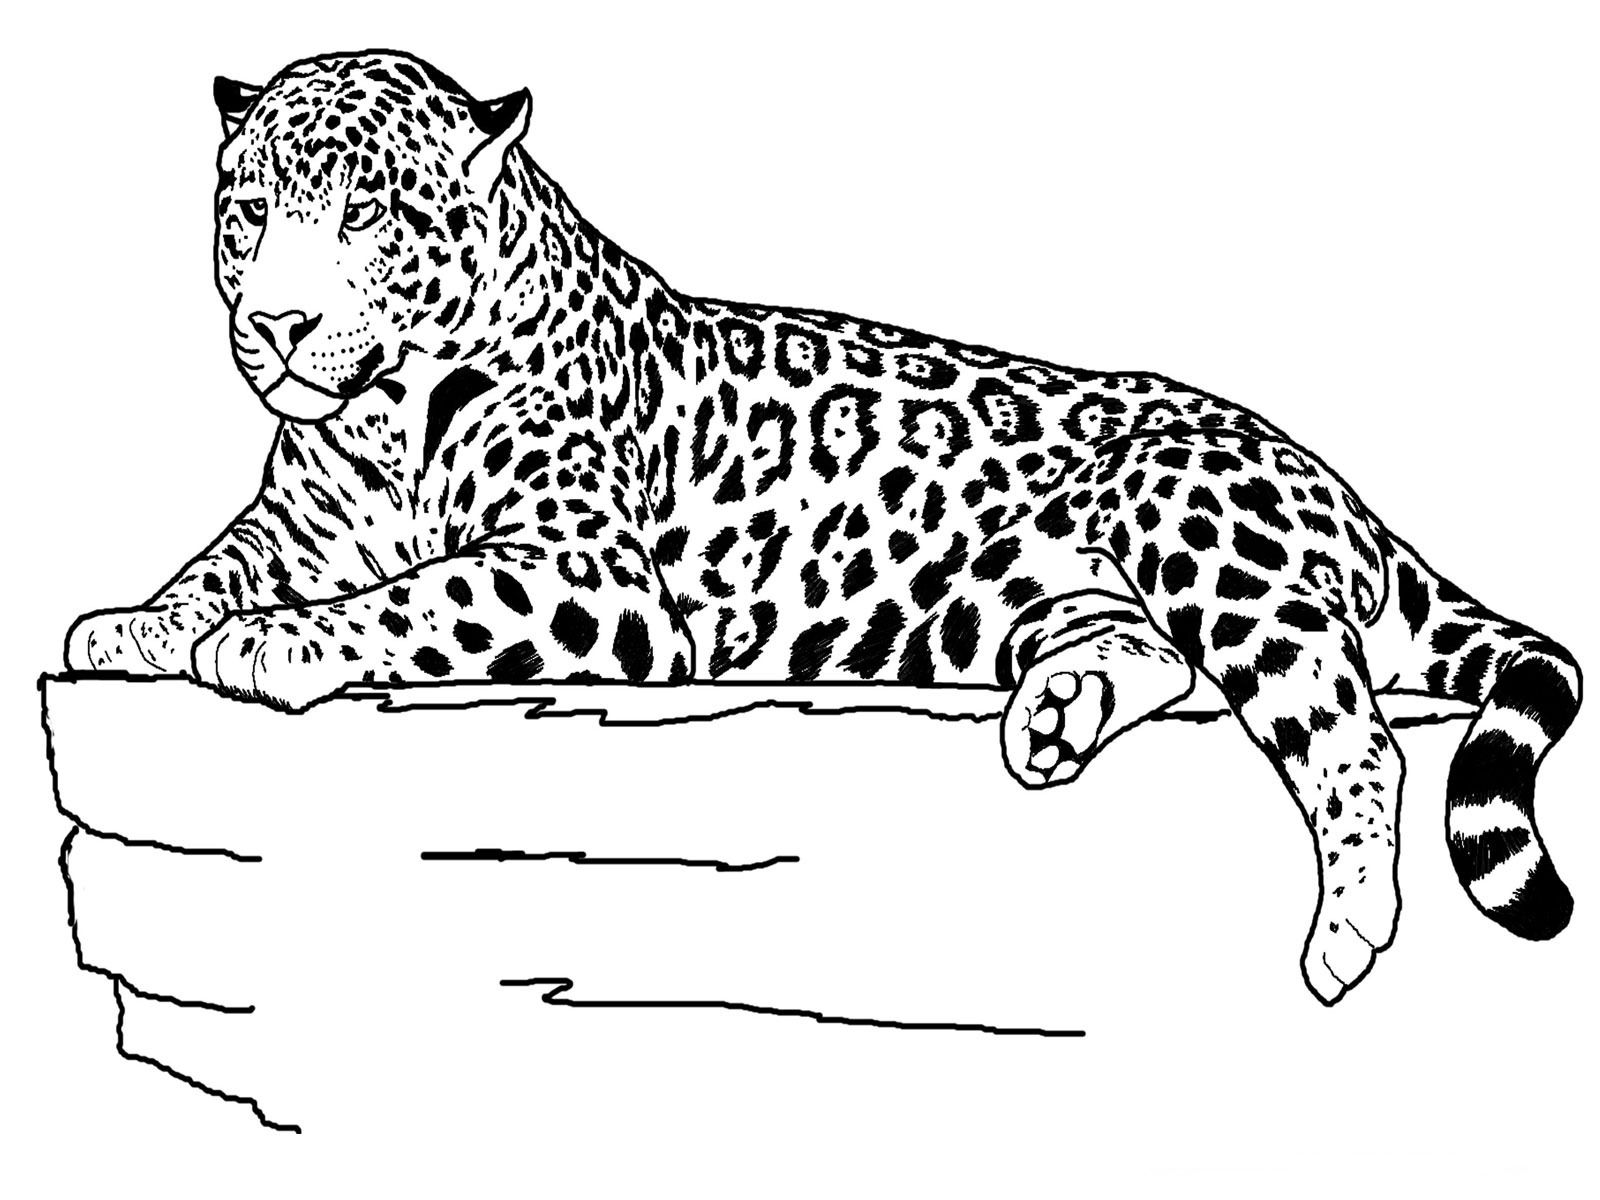 Printable coloring pages with animals - Zoo Animal Coloring Pages Also Available Are Farm Animals All Printable